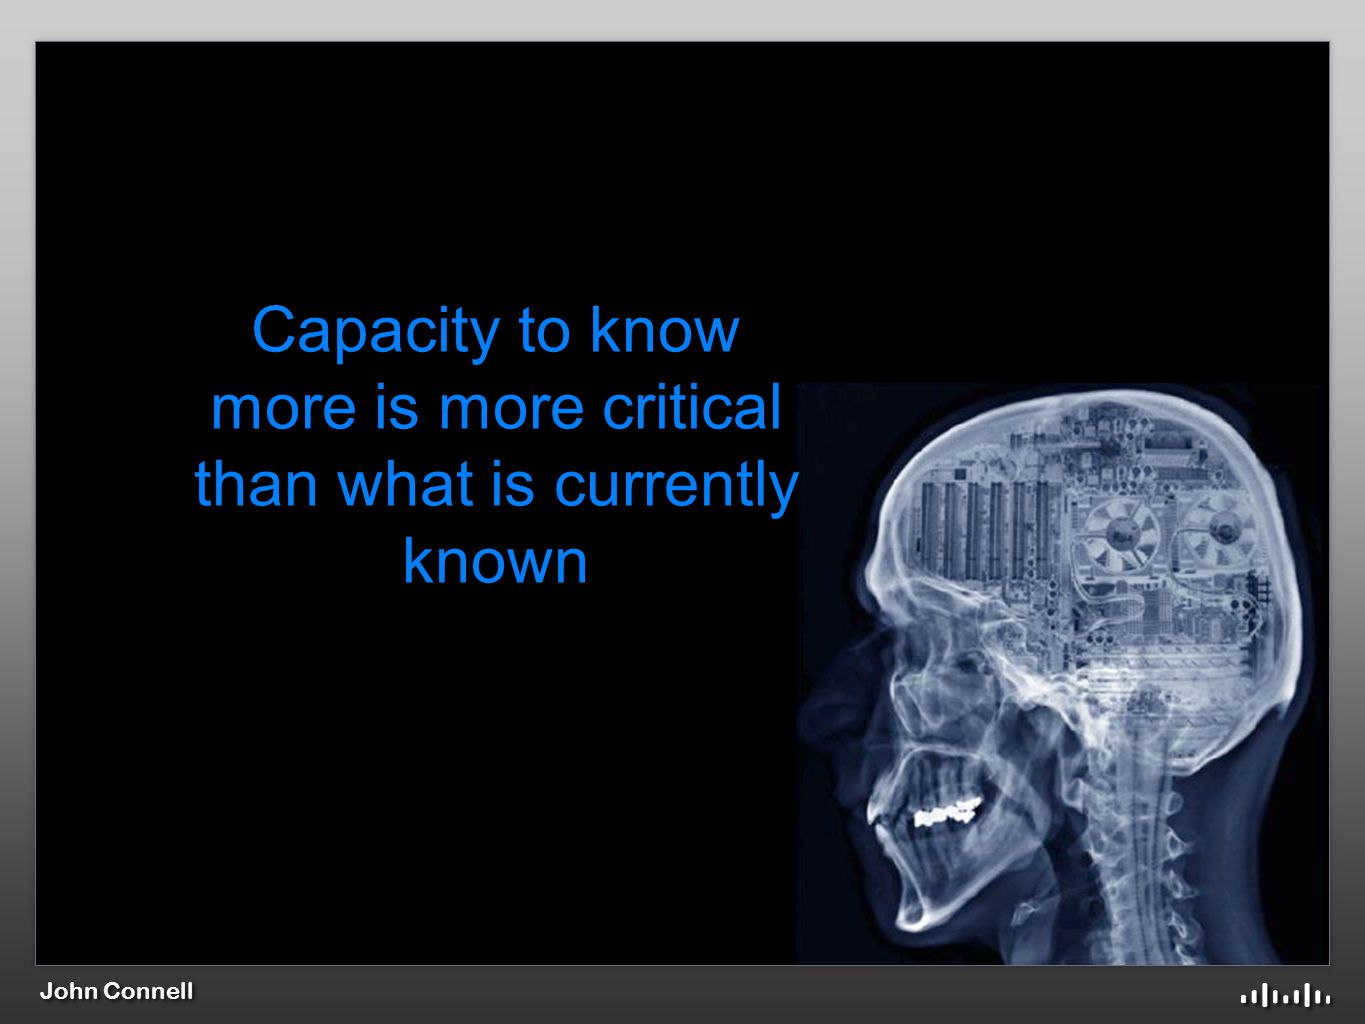 John Connell Capacity to know more is more critical than what is currently known